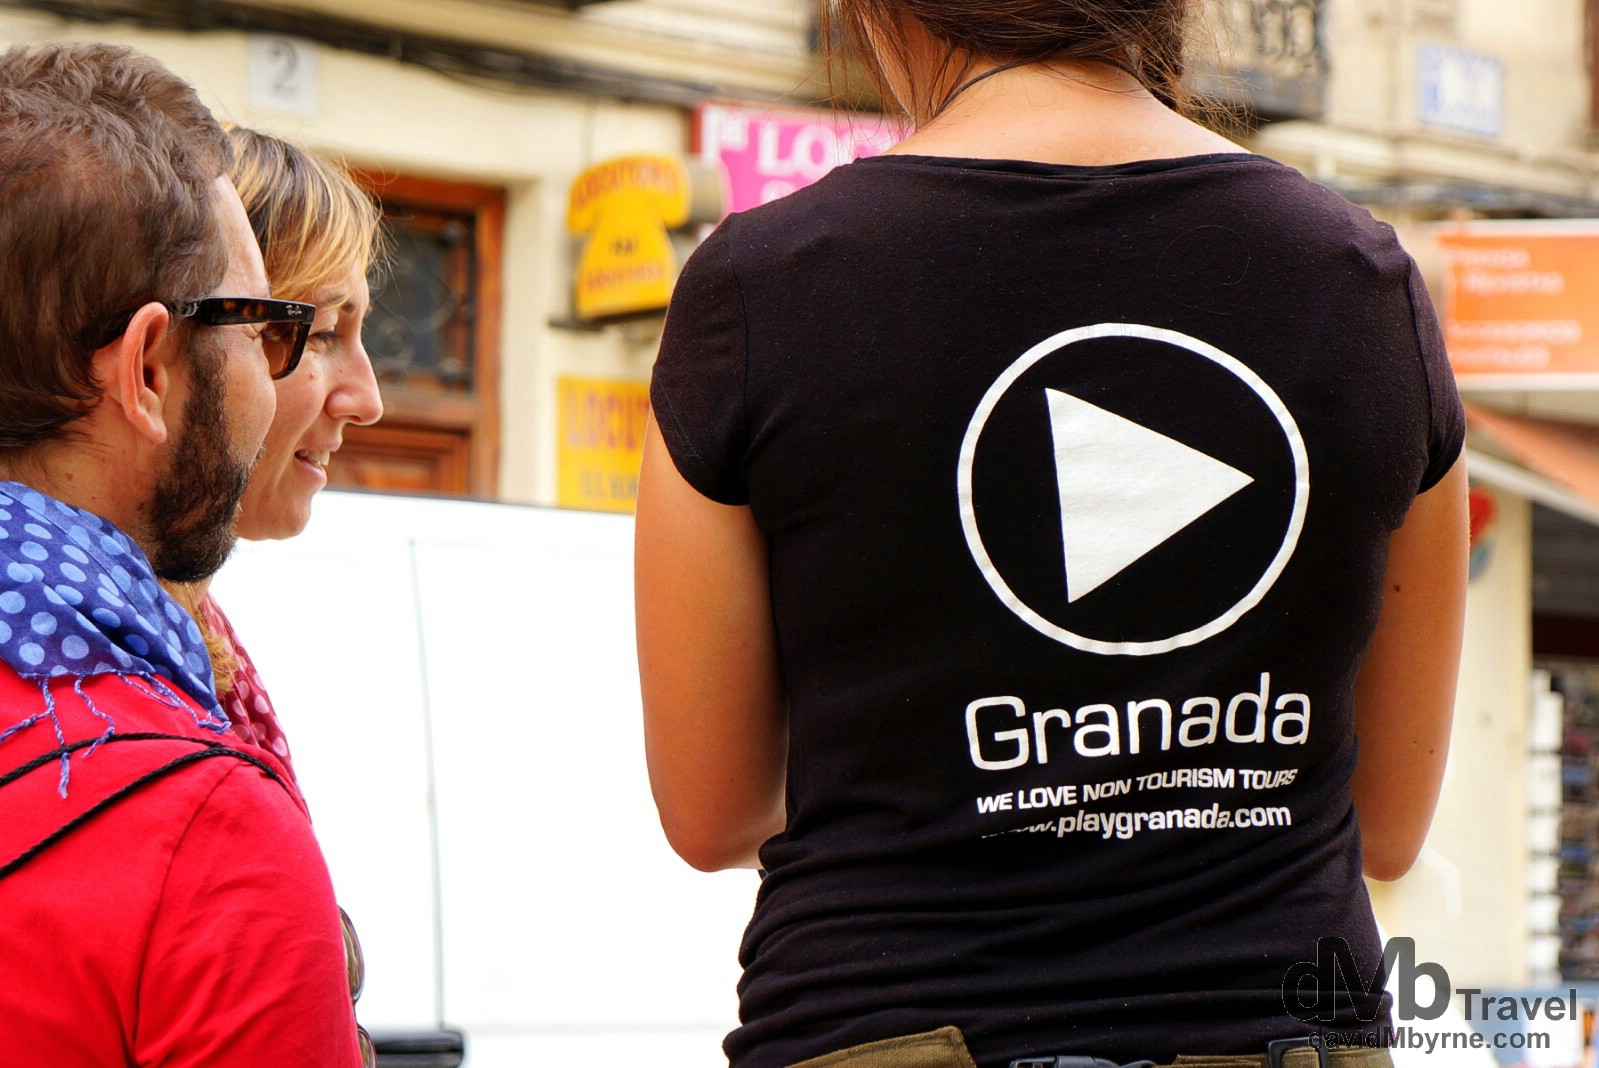 Tourist help in Plaza Nueva, Granada, Andalusia, Spain. June 10th, 2014.